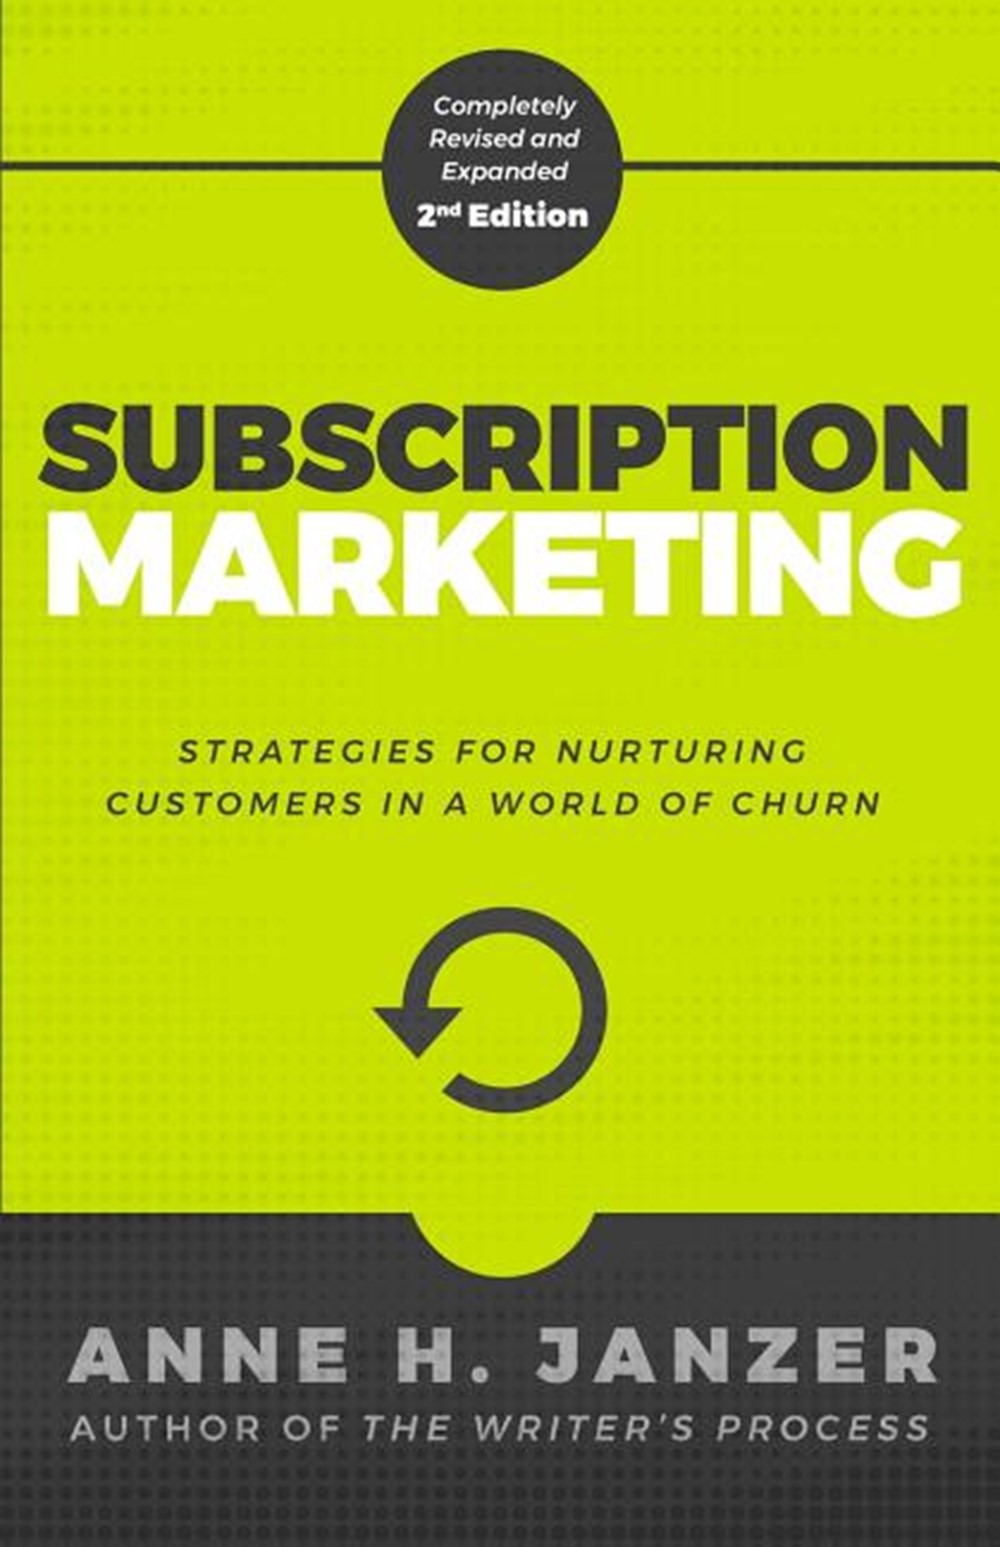 Subscription Marketing: Strategies for Nurturing Customers in a World of Churn (Revised, Expanded)